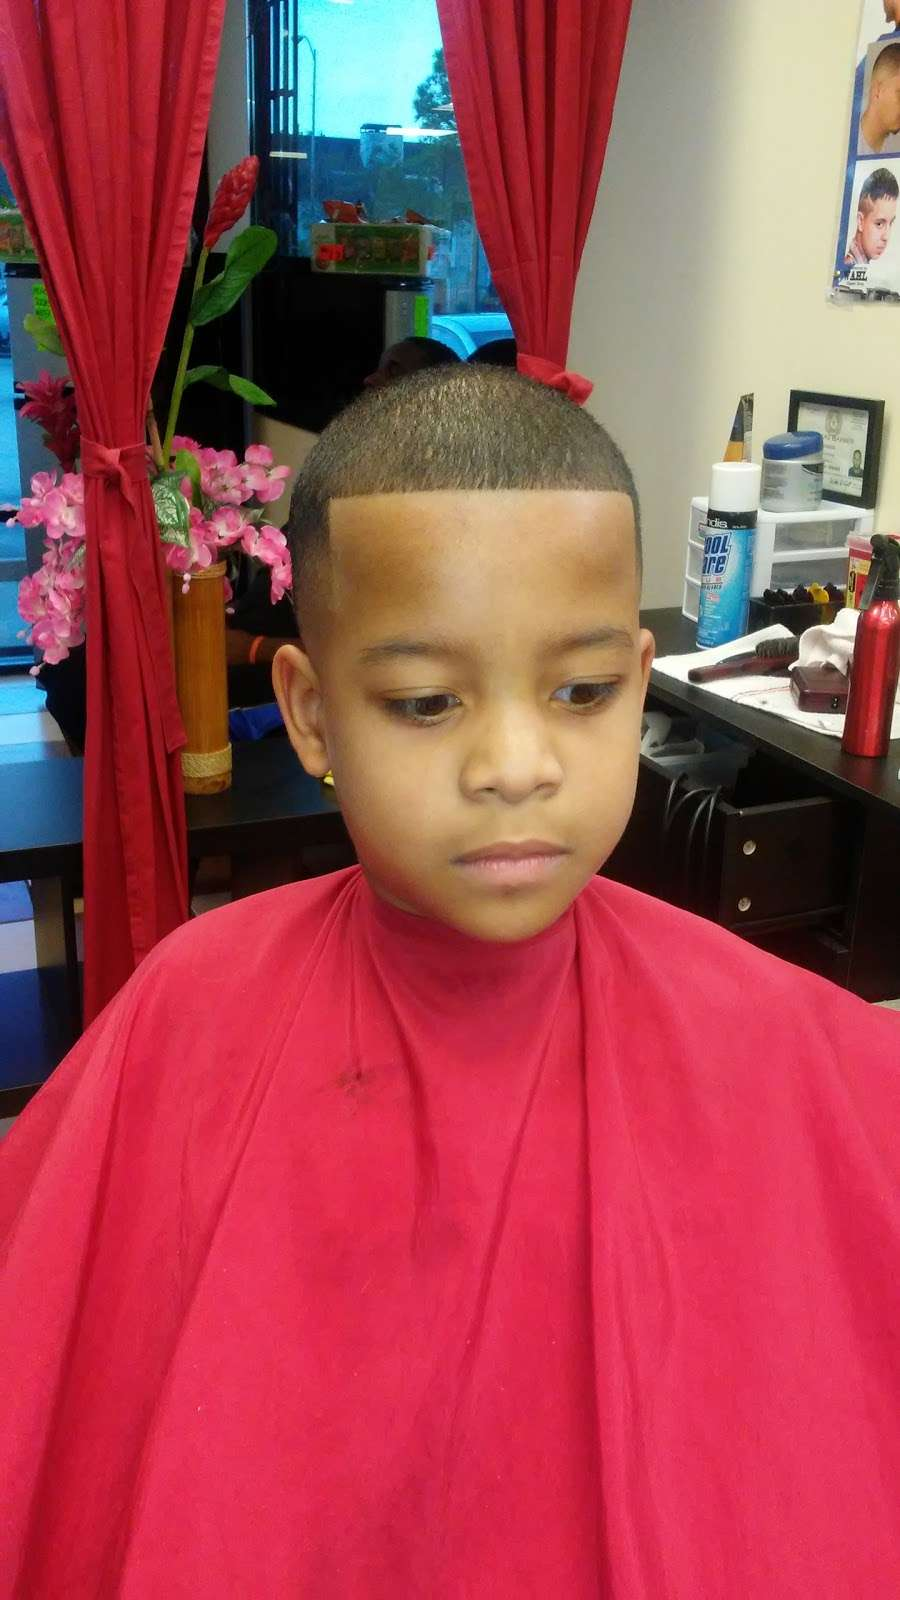 new style salon and barbershop - hair care  | Photo 7 of 10 | Address: 917 Greens Rd, Houston, TX 77060, USA | Phone: (281) 873-2121